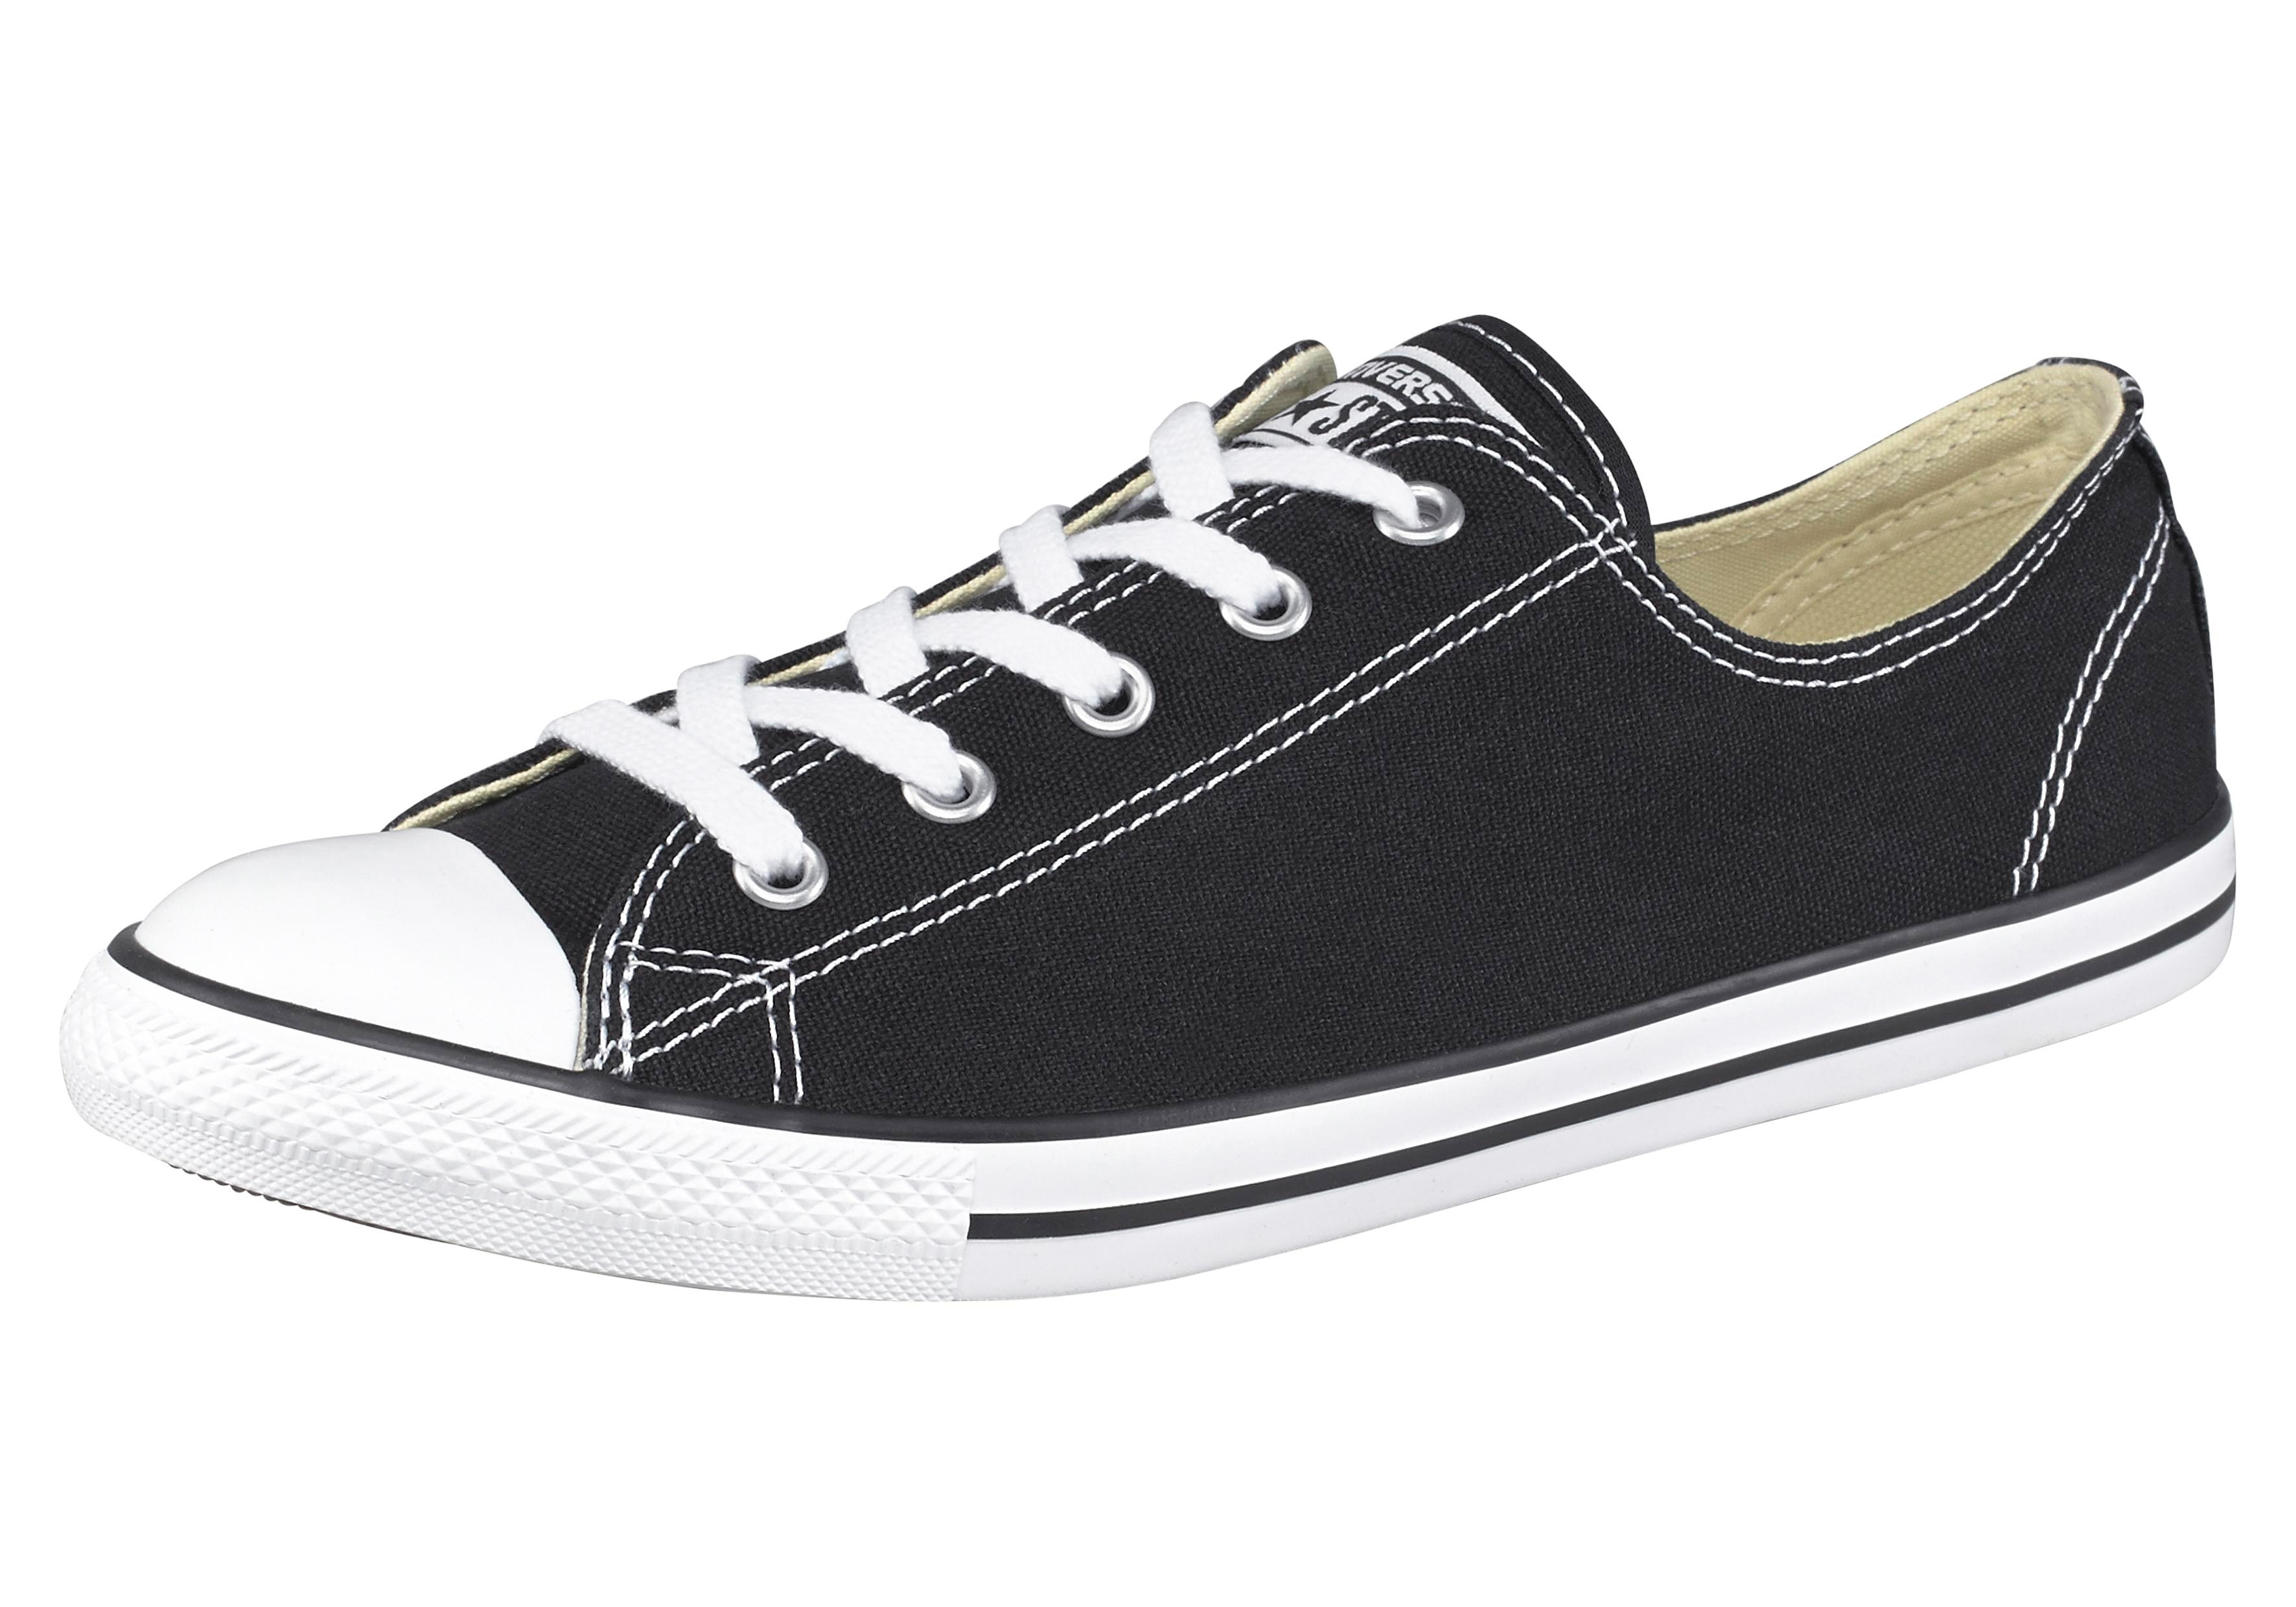 423b0f72d81 ... CONVERSE Sneakers CT All Star Ballet Lace, CONVERSE Sneakers All Star  Basic Leather, CONVERSE Sneakers in plat model, CONVERSE Sneakers Chuck  Taylor All ...